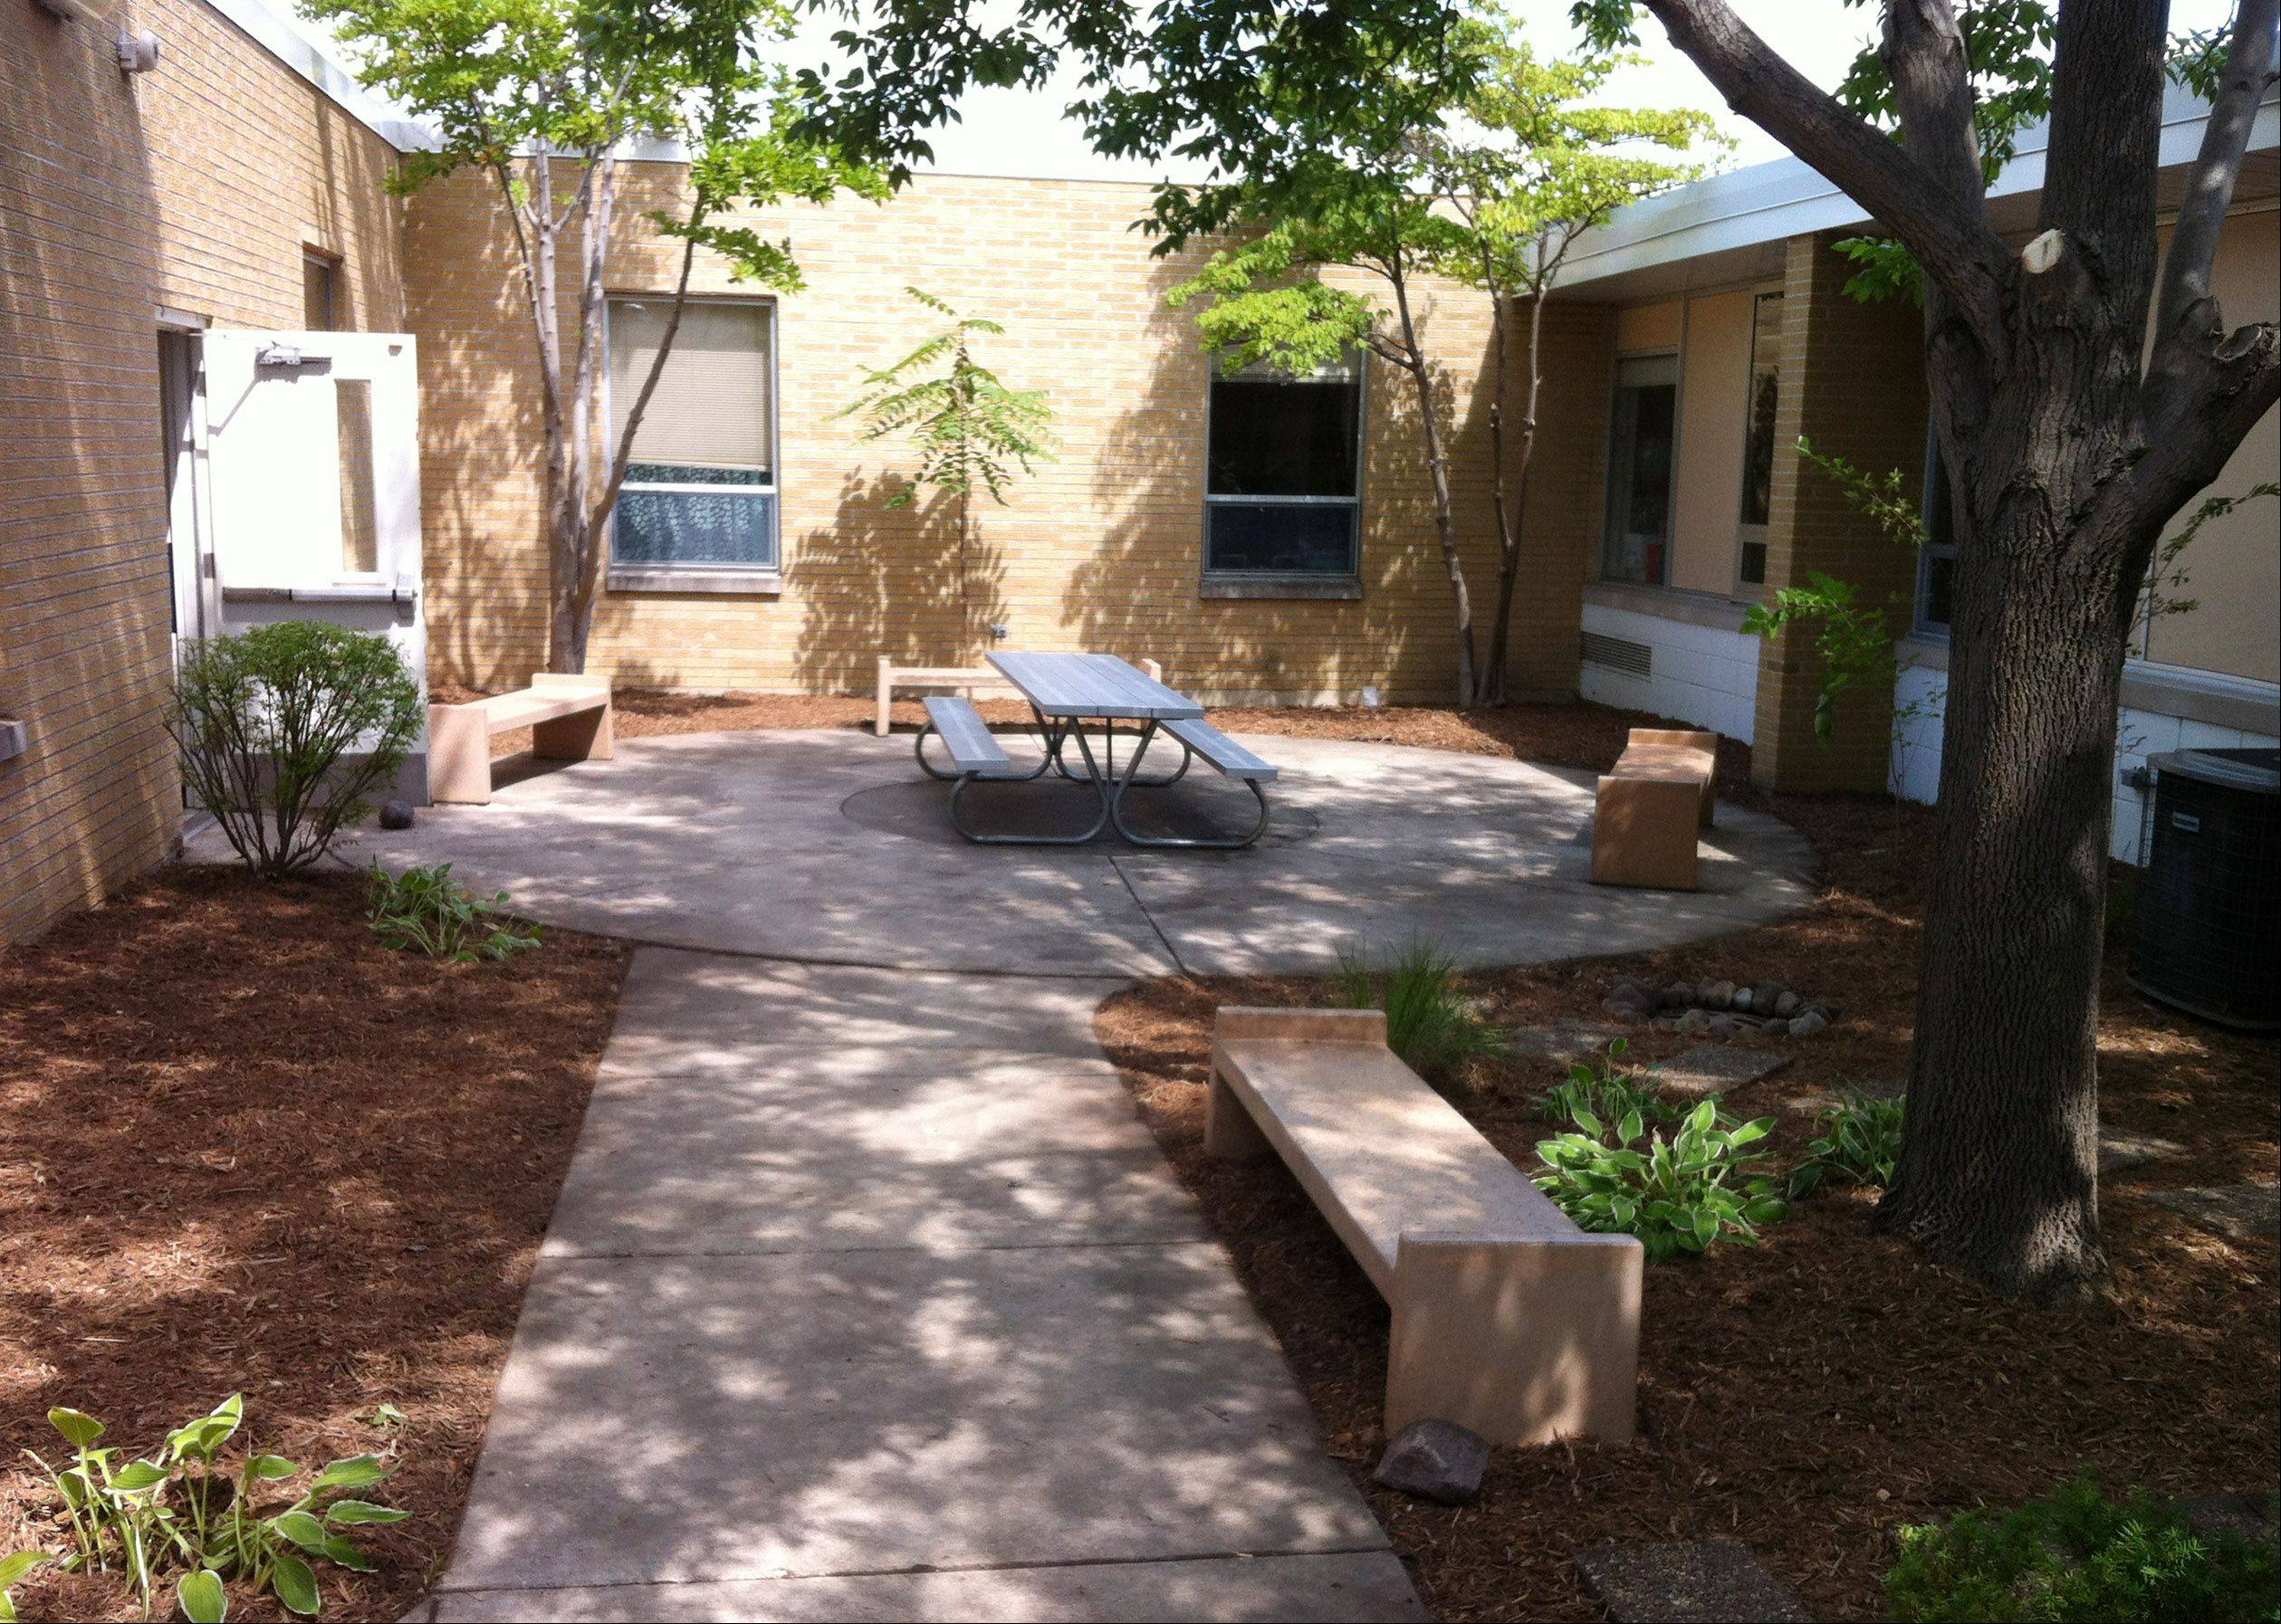 The courtyard at Fairhaven School in Mundelein was transformed after volunteers pitched in to help at the school.